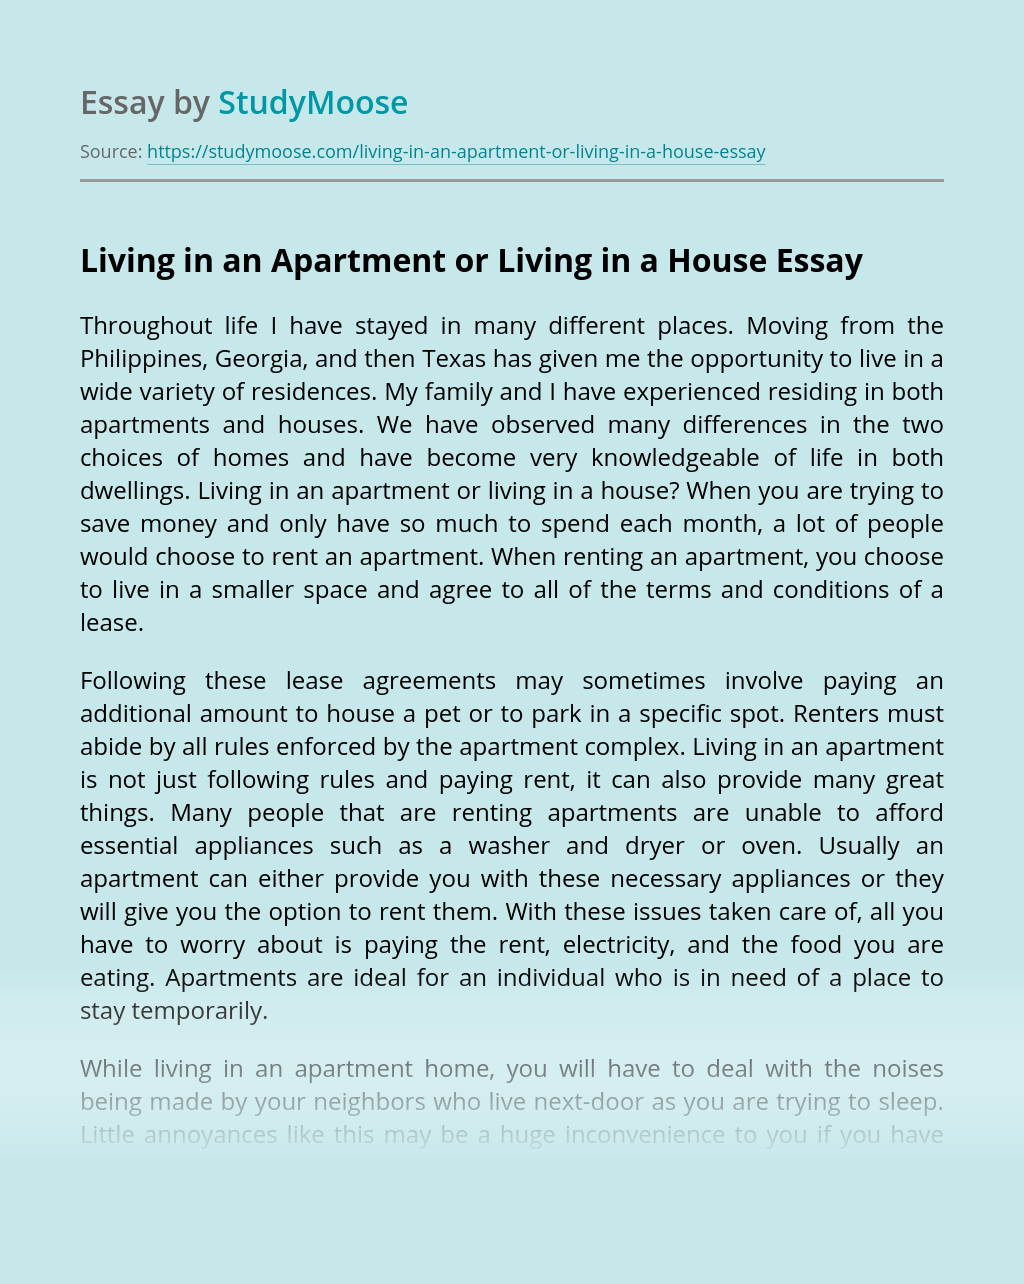 Living in an Apartment or Living in a House